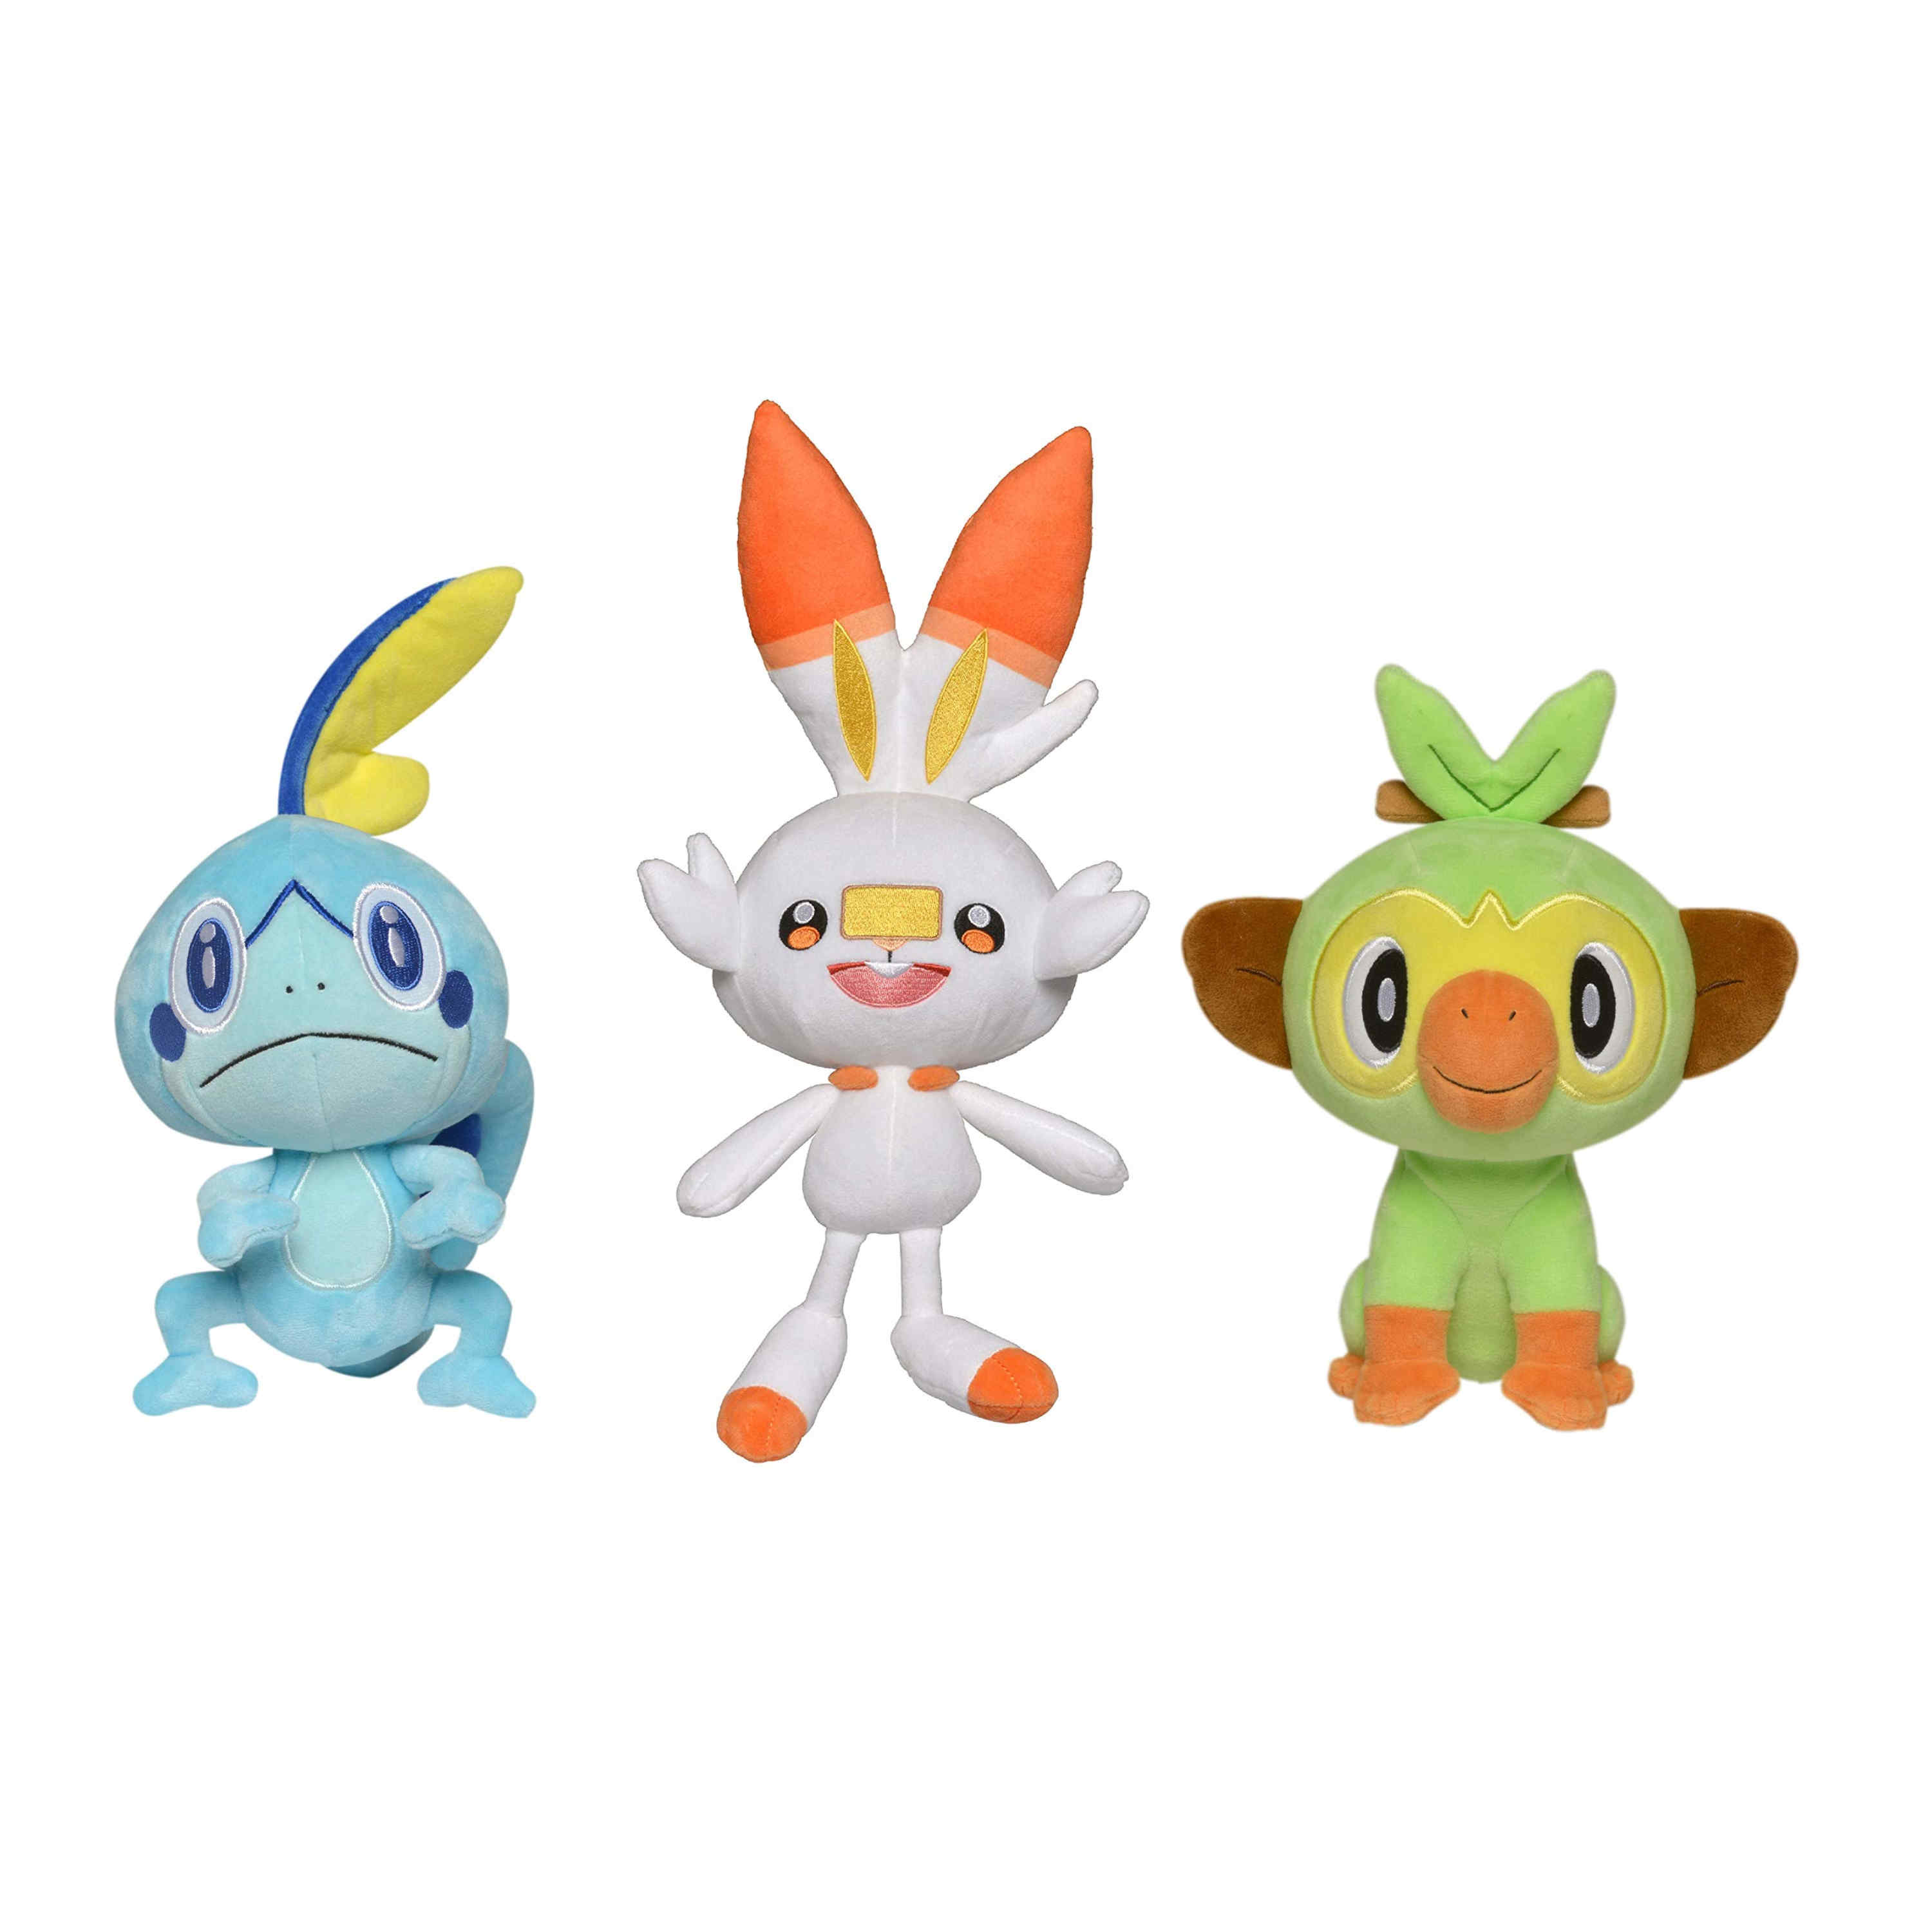 Pokemon Plush 3 Piece Bundle Galar Region 8 Scorbunny Grookey Sobble Plush Dolls Officially Licensed Walmart Com Walmart Com Whether you're after a cosy christmas dinner menu, a aussie summer christmas, a super easy christmas menu or economical options, you'll find inspiration here! pokemon plush 3 piece bundle galar region 8 scorbunny grookey sobble plush dolls officially licensed walmart com